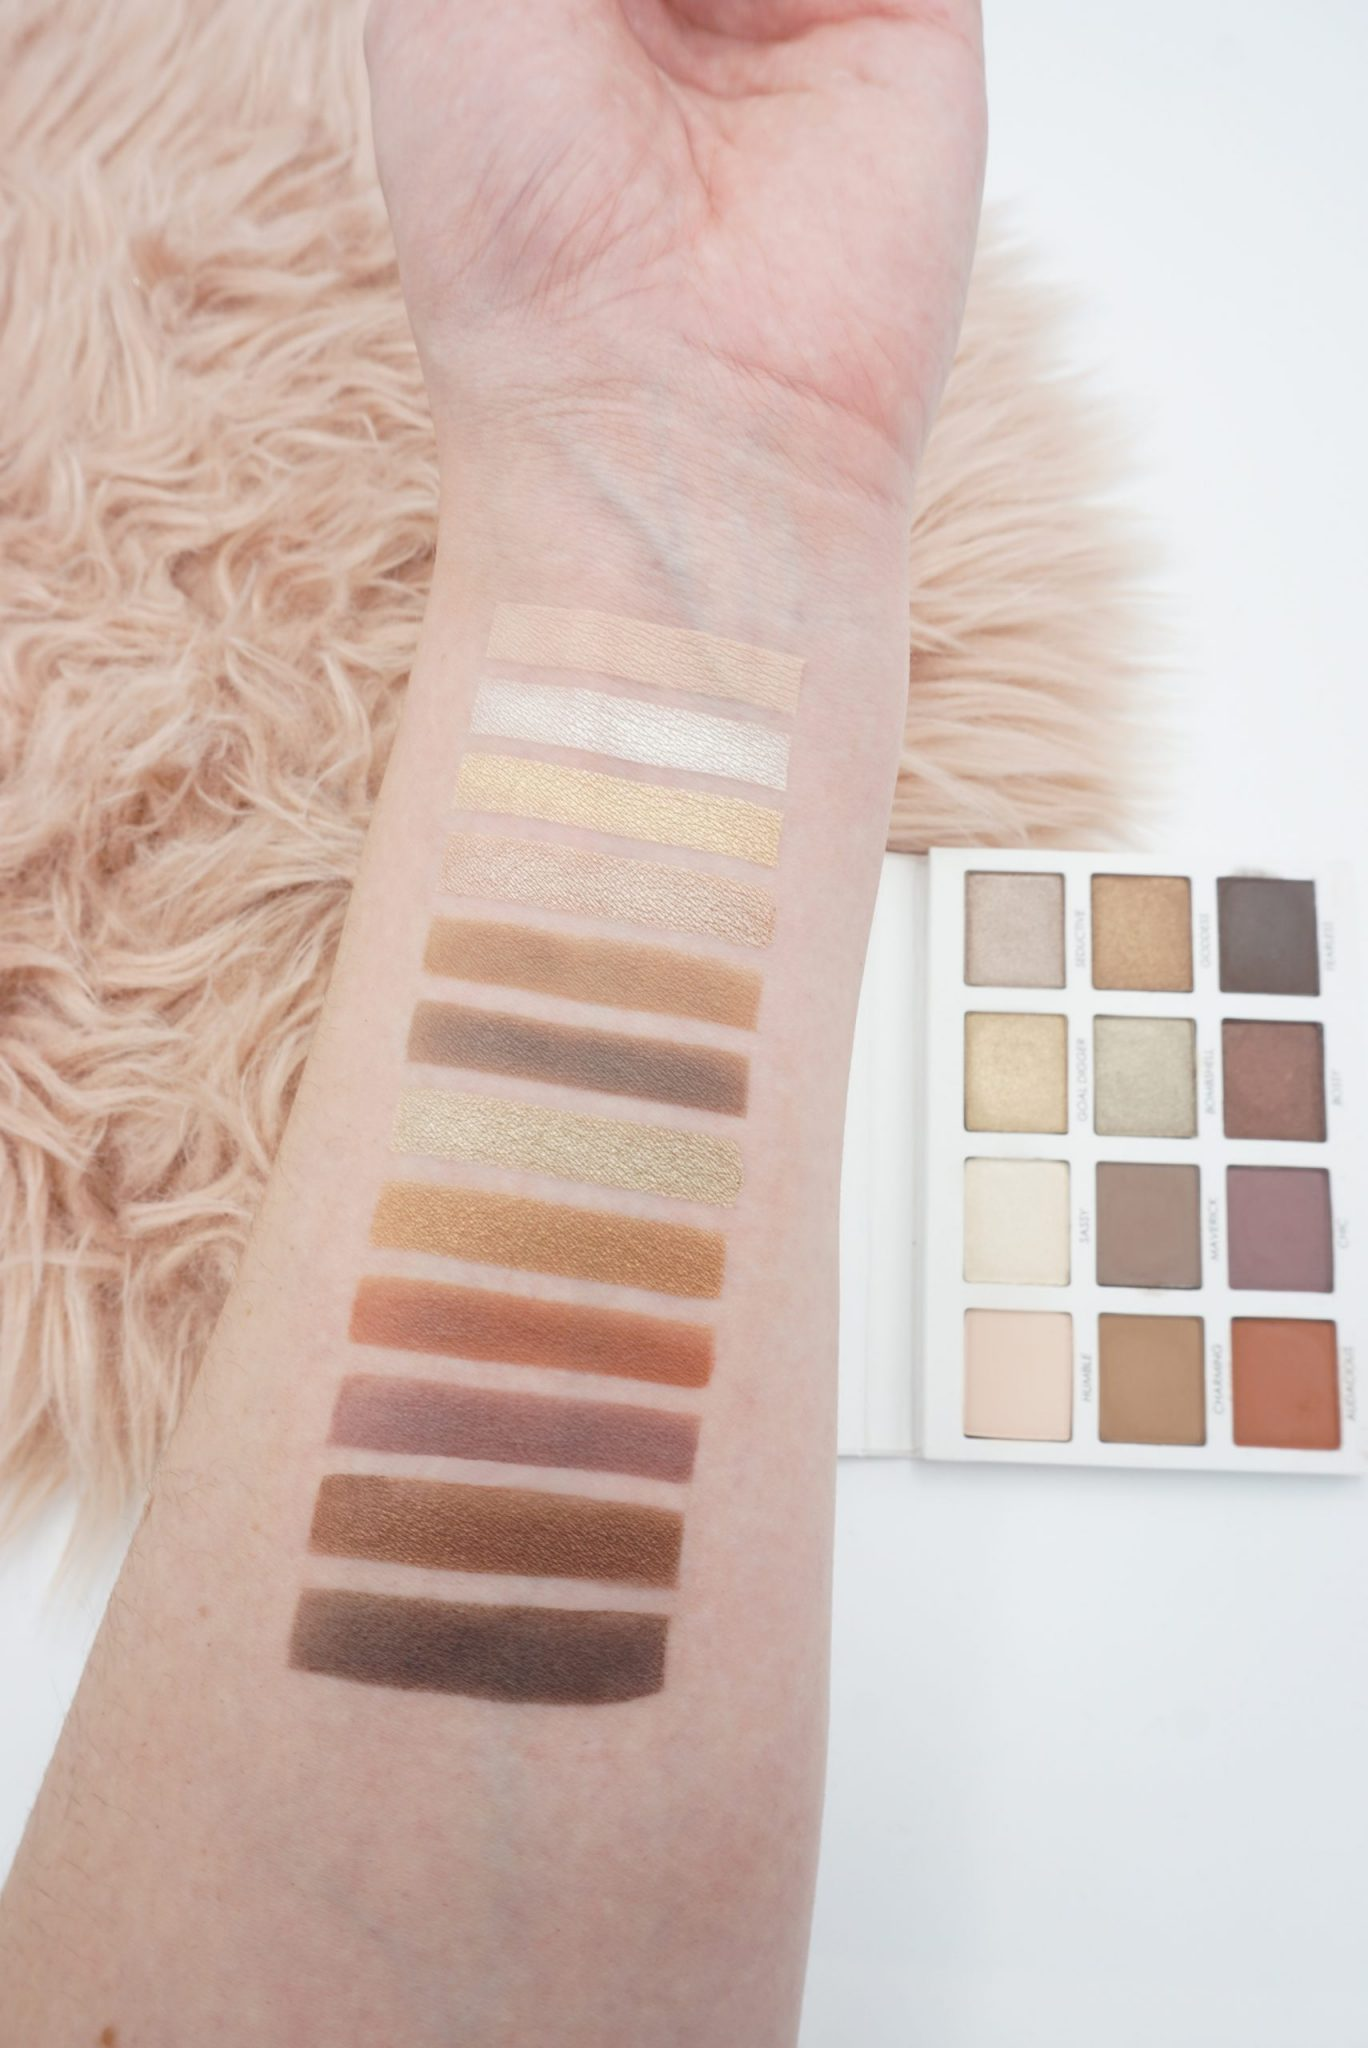 Transform into a Beautiful Parisian with the Persona Cosmetics Identity Palette ⋆ Beautymone